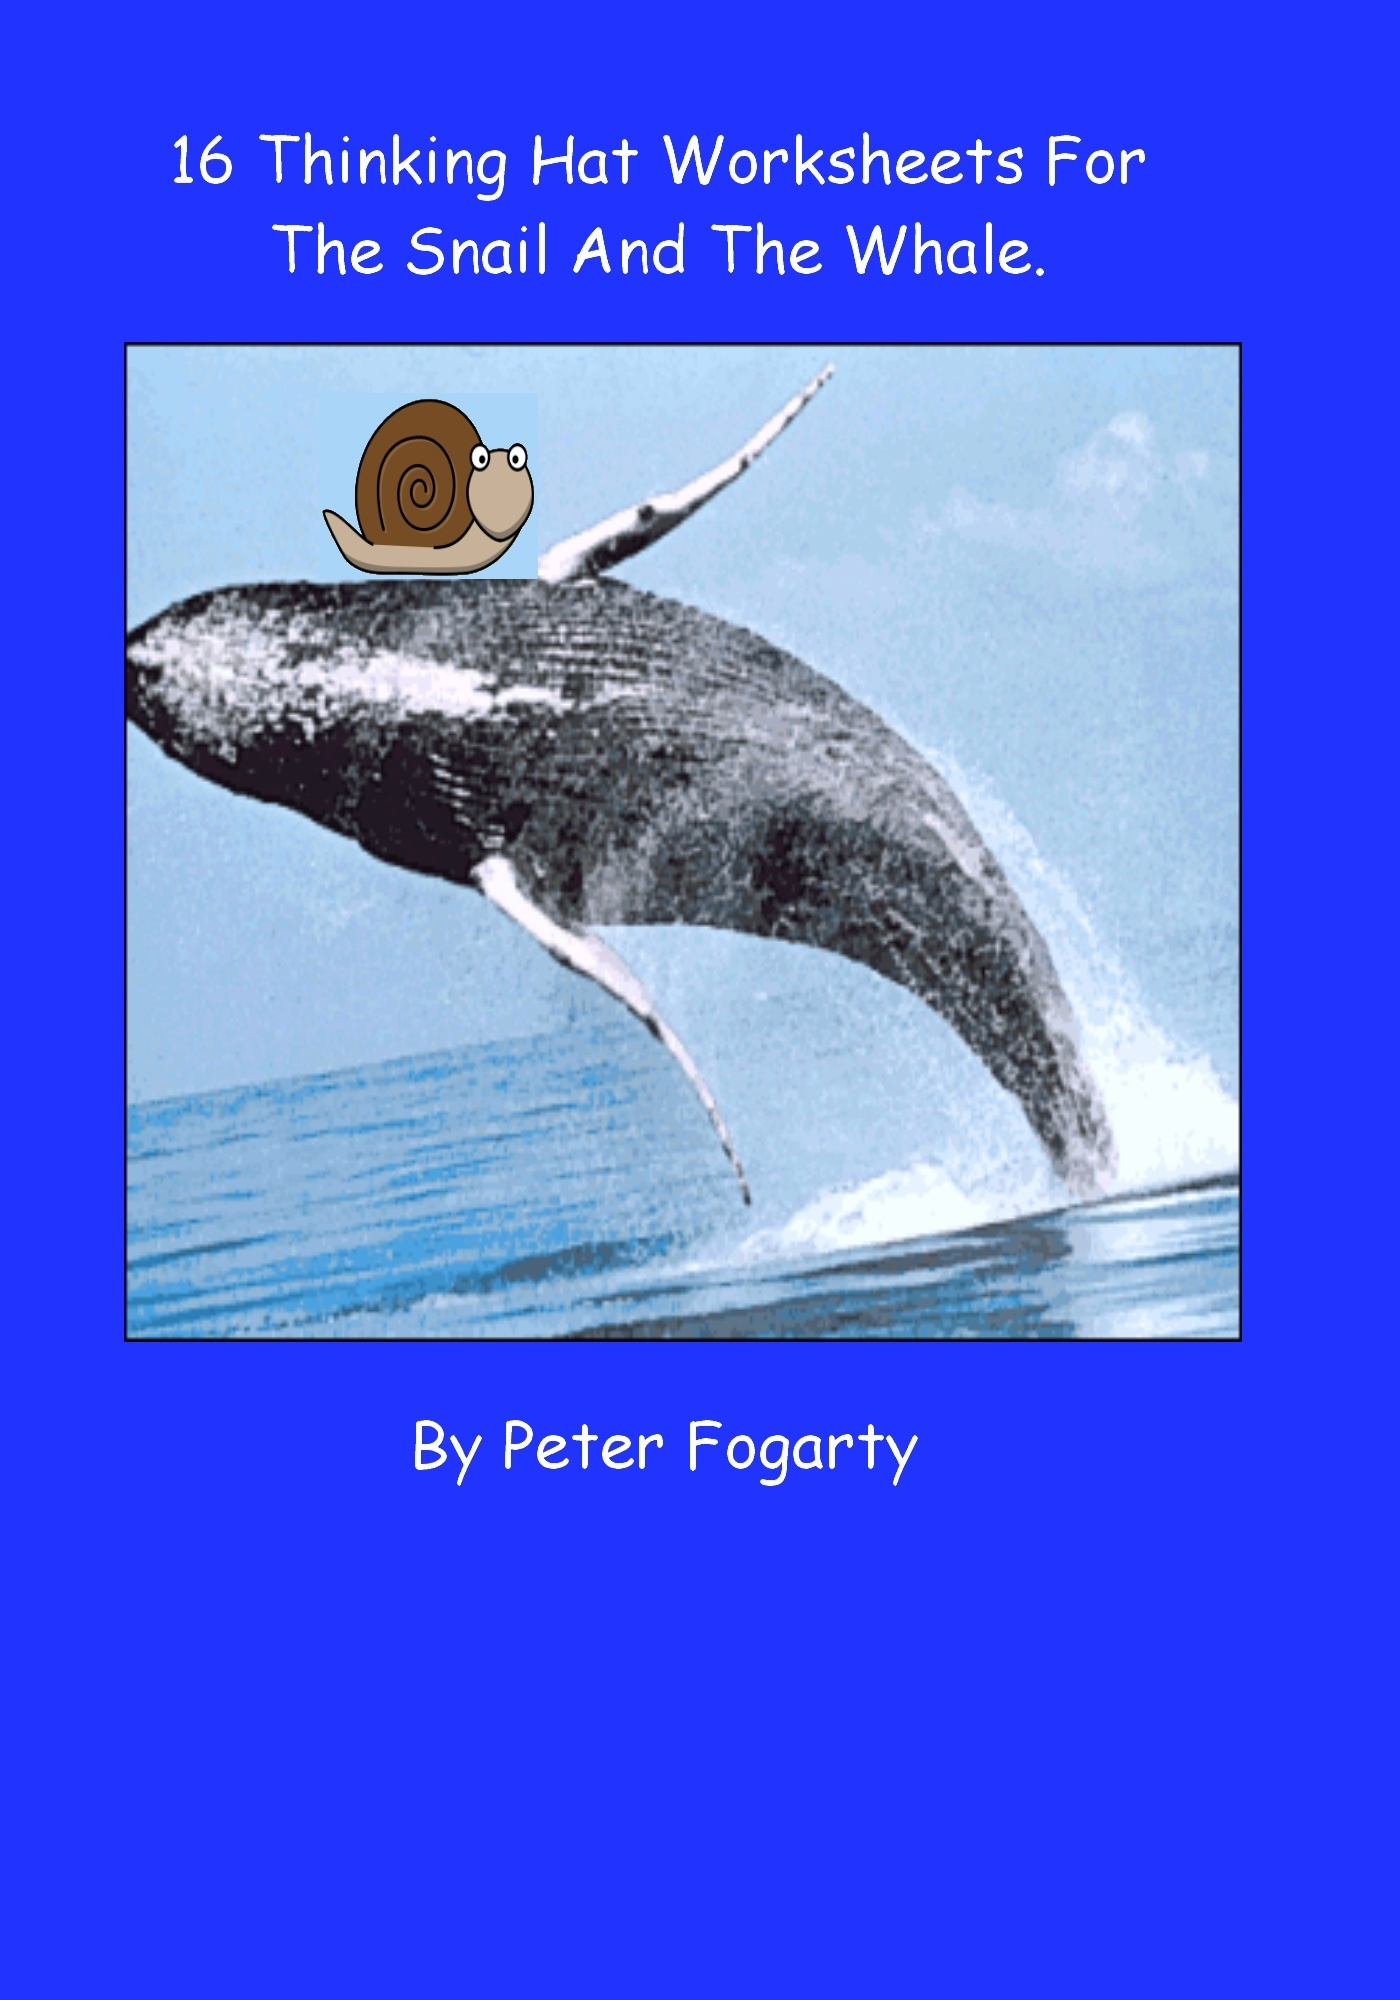 16 Thinking Hat Worksheets for The Snail And The Whale By: Peter Fogarty